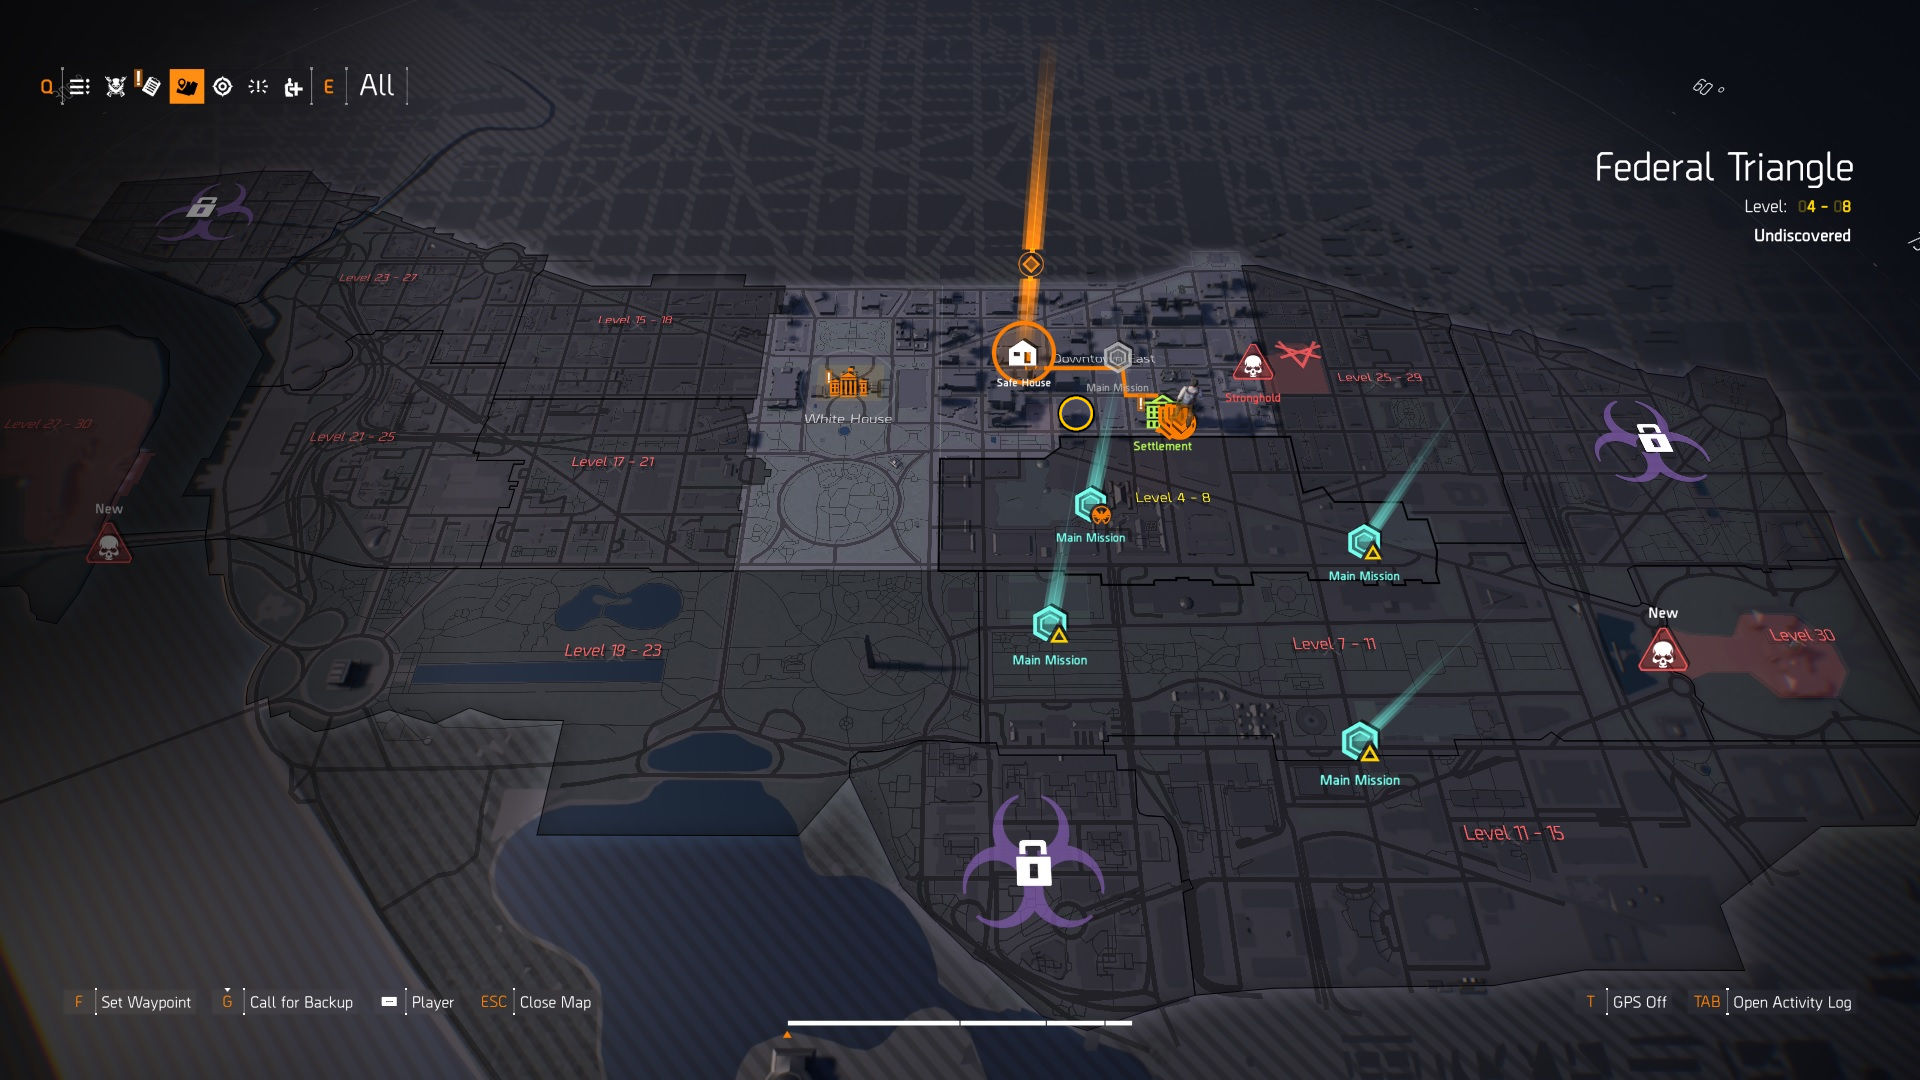 Demon mask location in The Division 2.